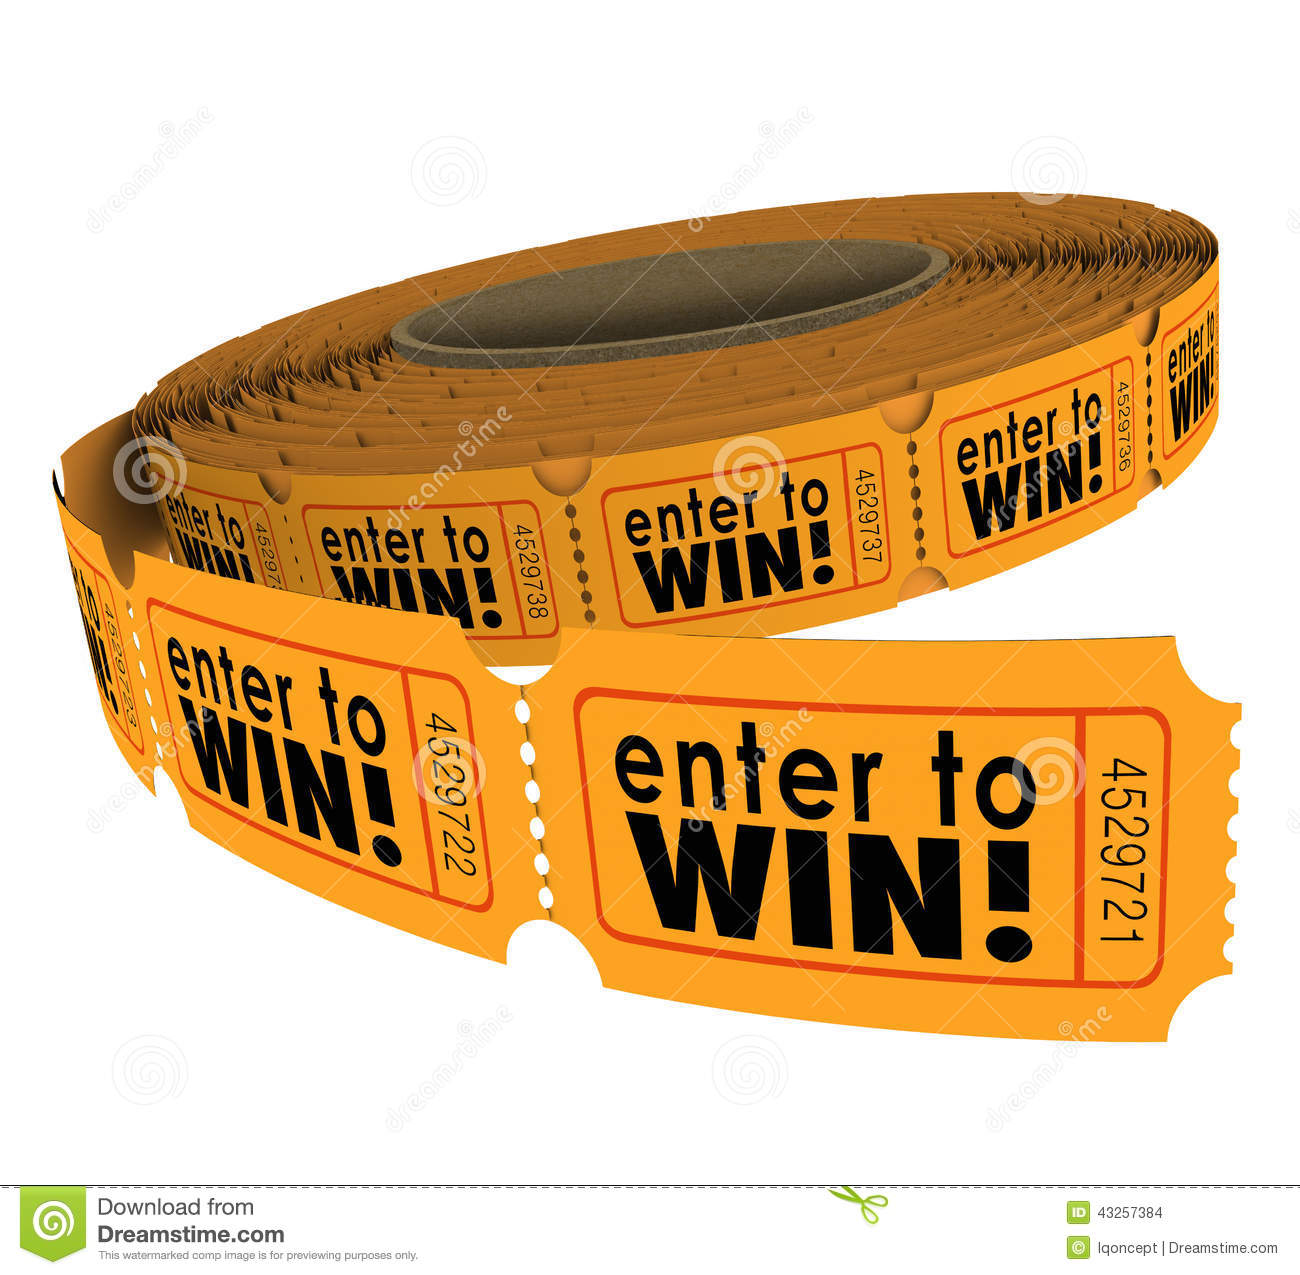 Enter To Win Words On A Roll Of Orange Raffle Or Lotter Tickets As A